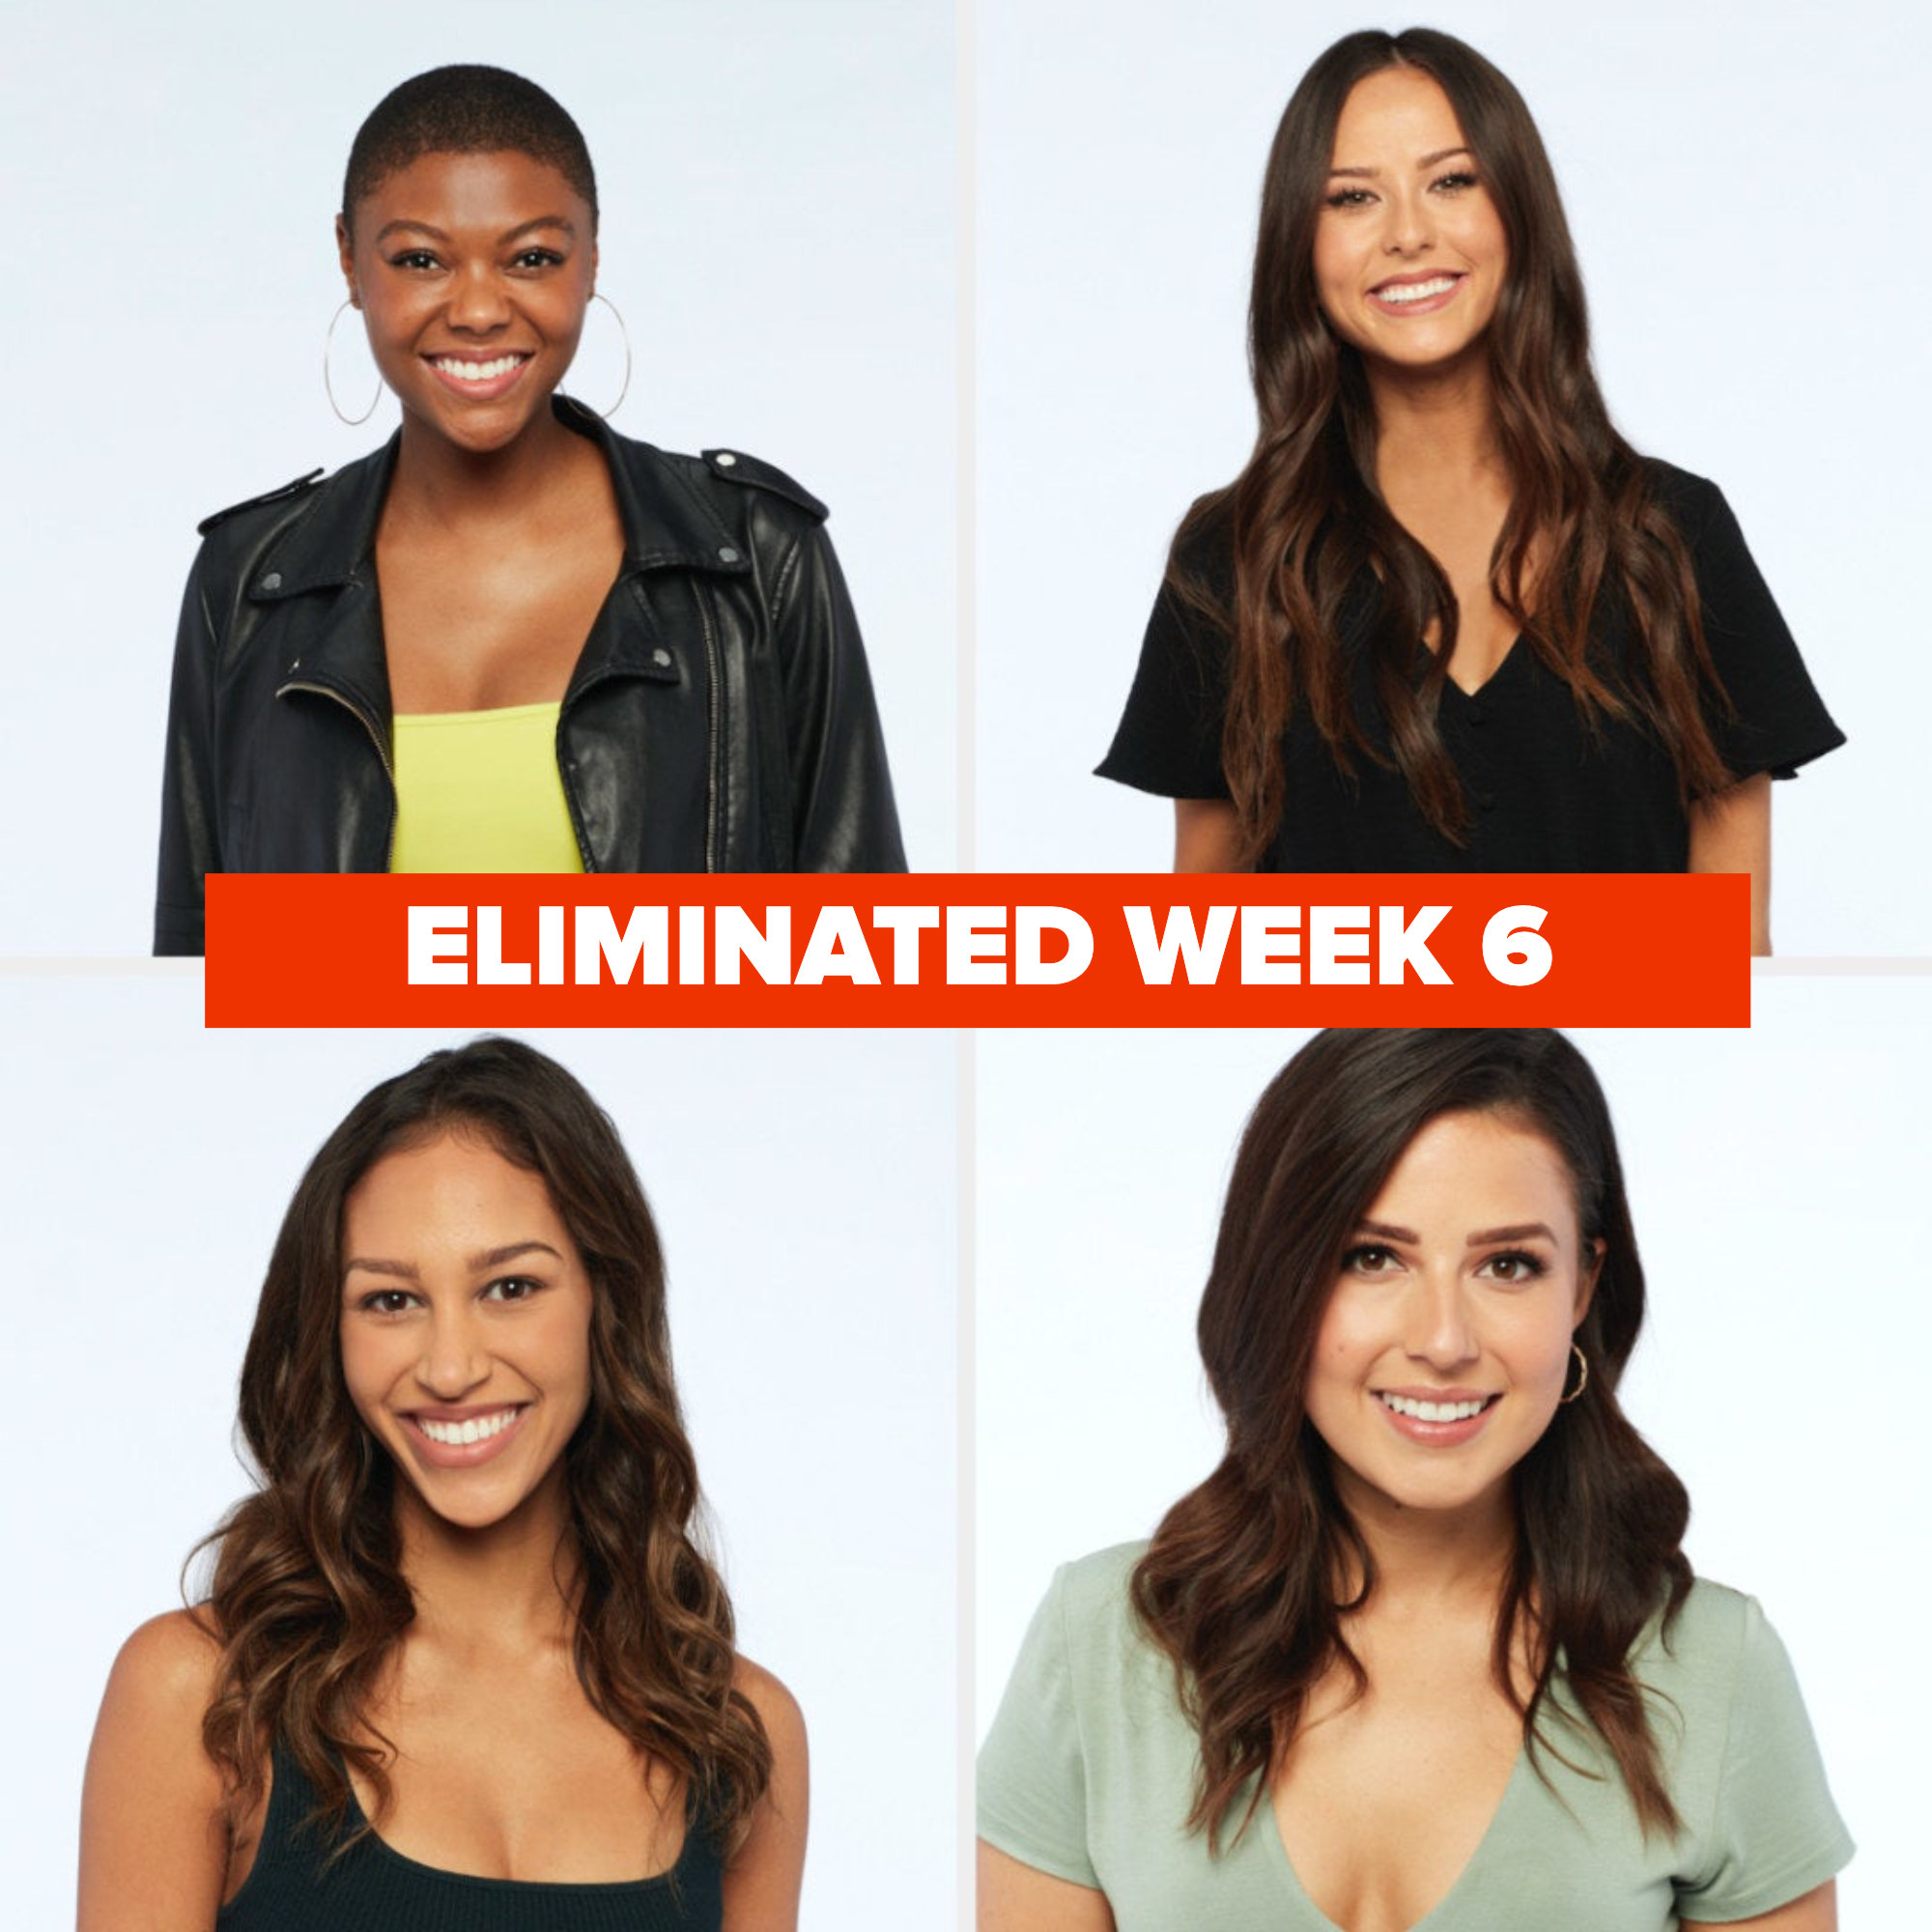 """the girls mentioned with """"eliminated week 6"""""""